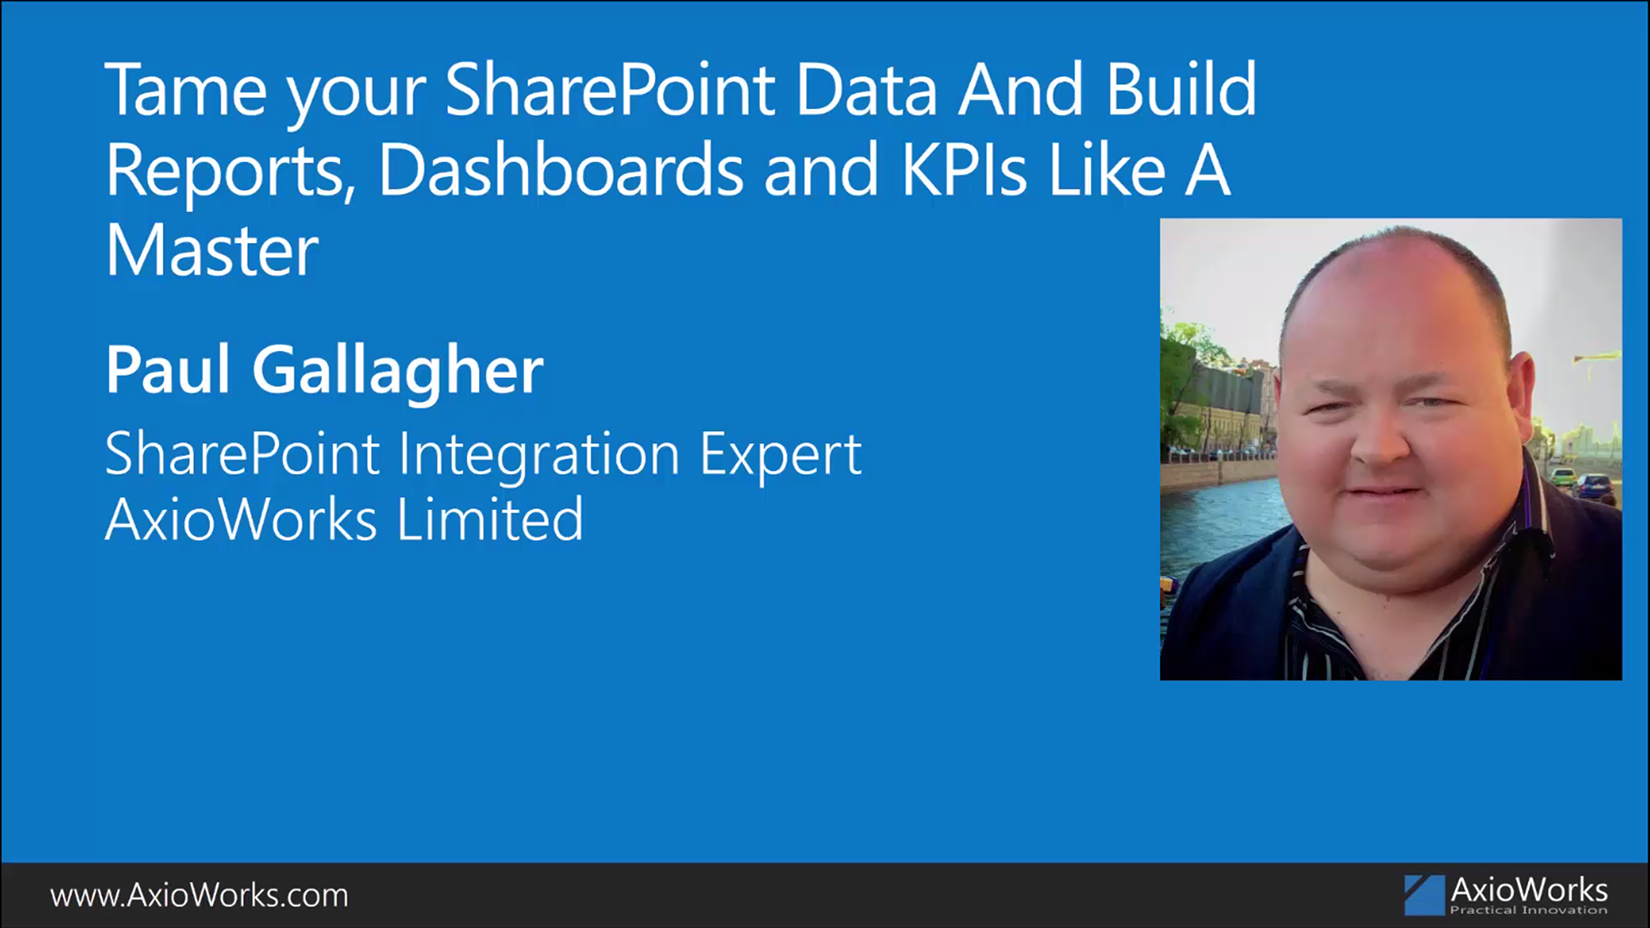 Tame your SharePoint data and build reports, dashboards and KPIs like a master. (Collab365 Session)